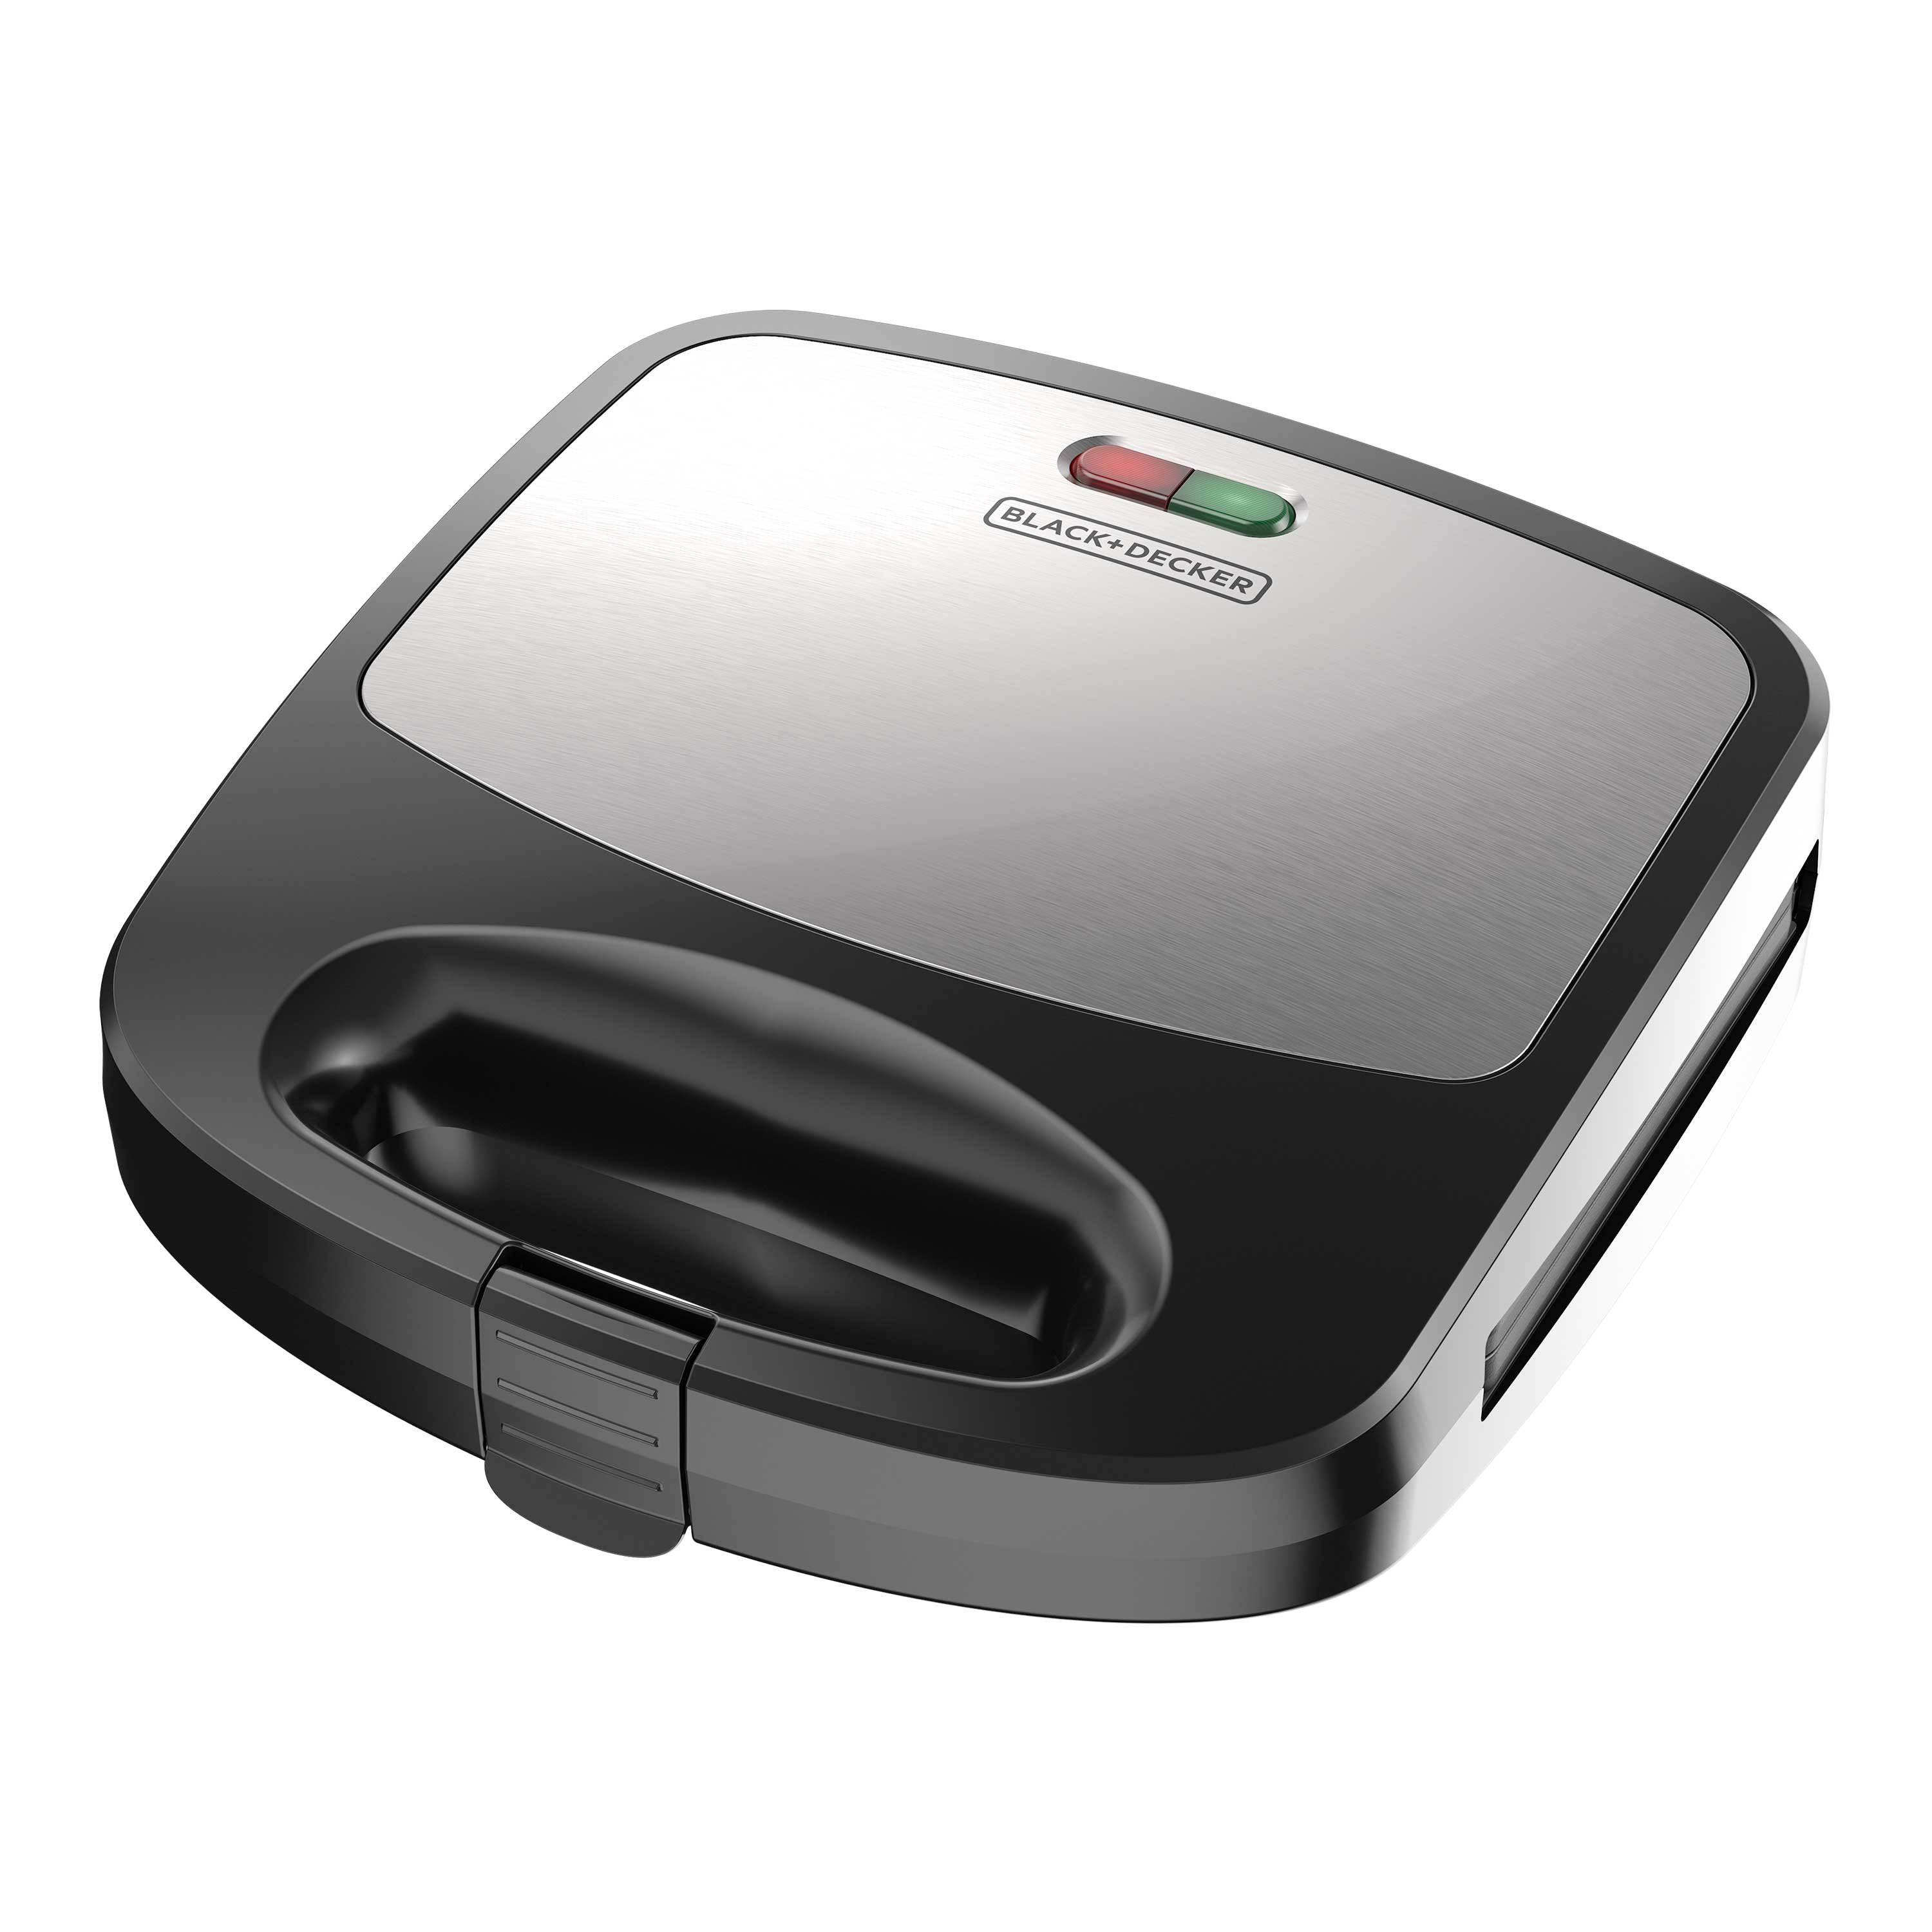 3-in-1 Morning Meal Station WM2000SD